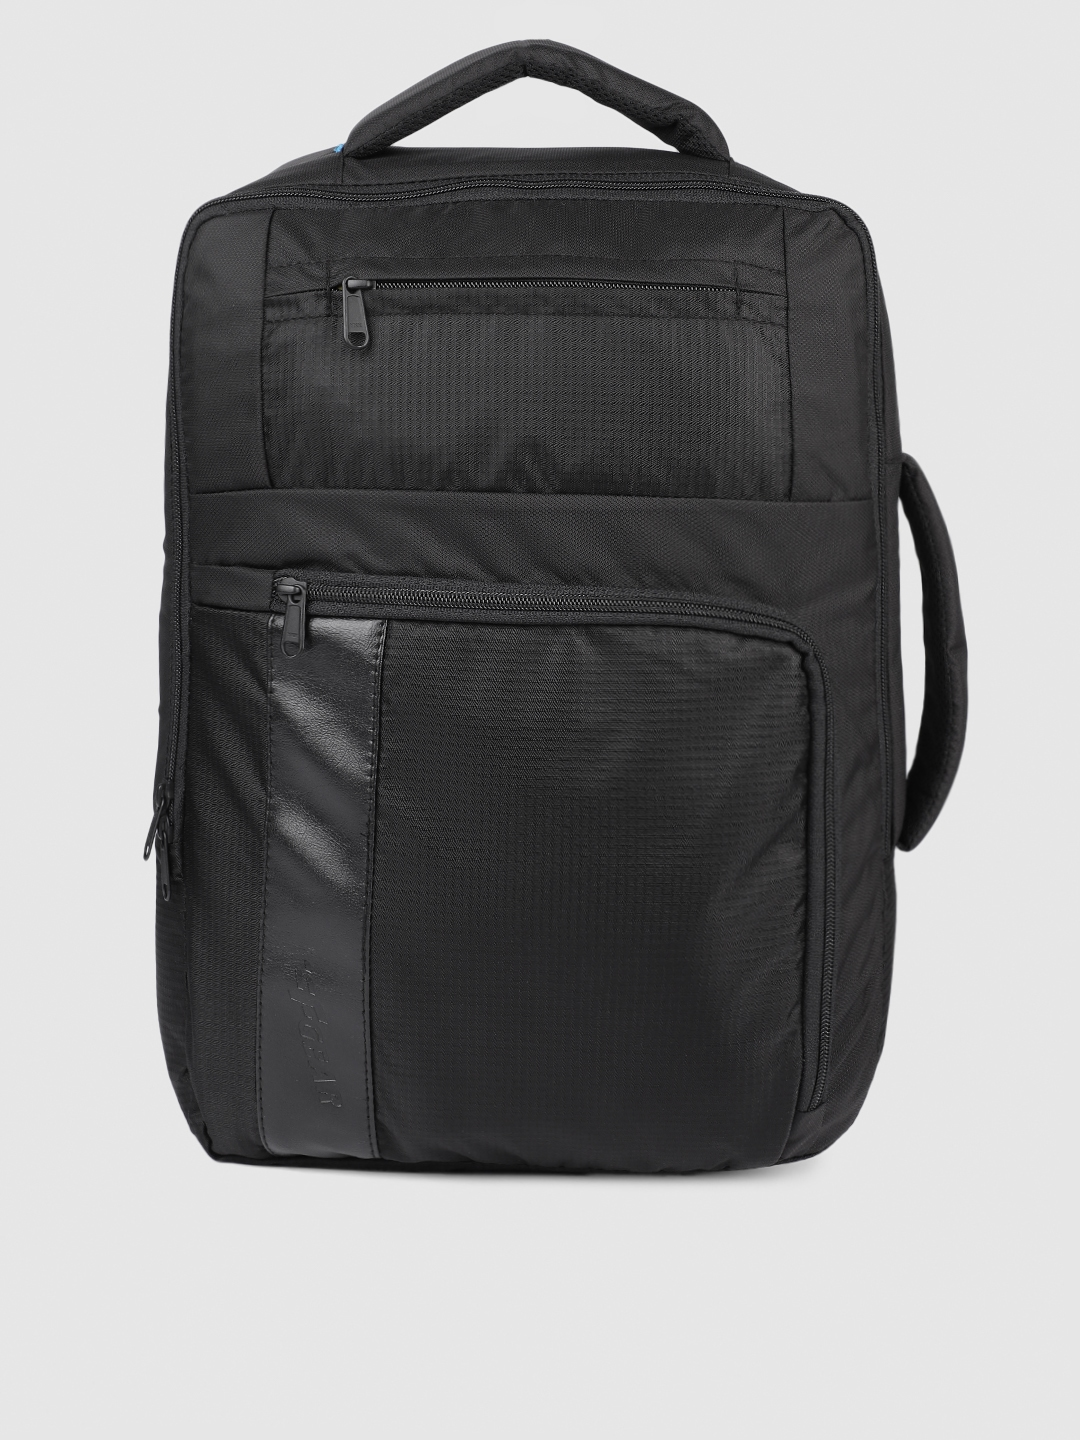 F Gear Unisex Black Solid Spartan Backpack